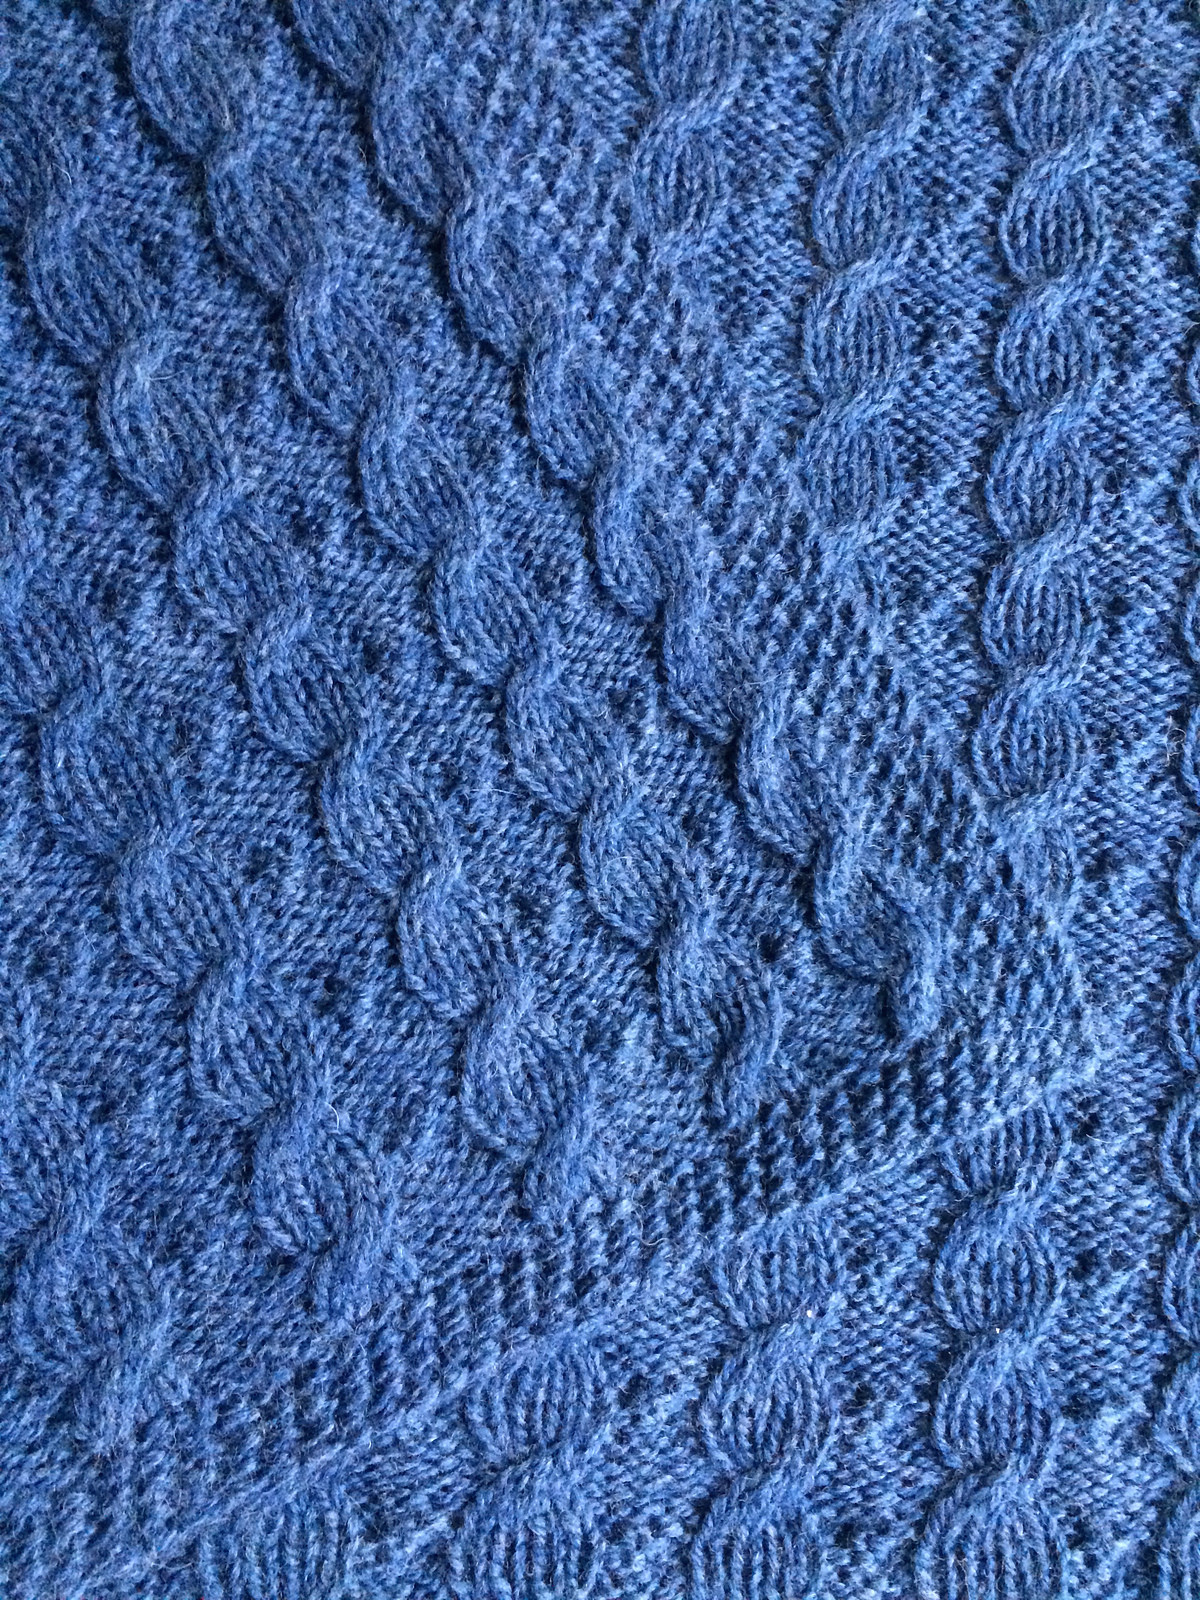 reversible cable knitting patterns